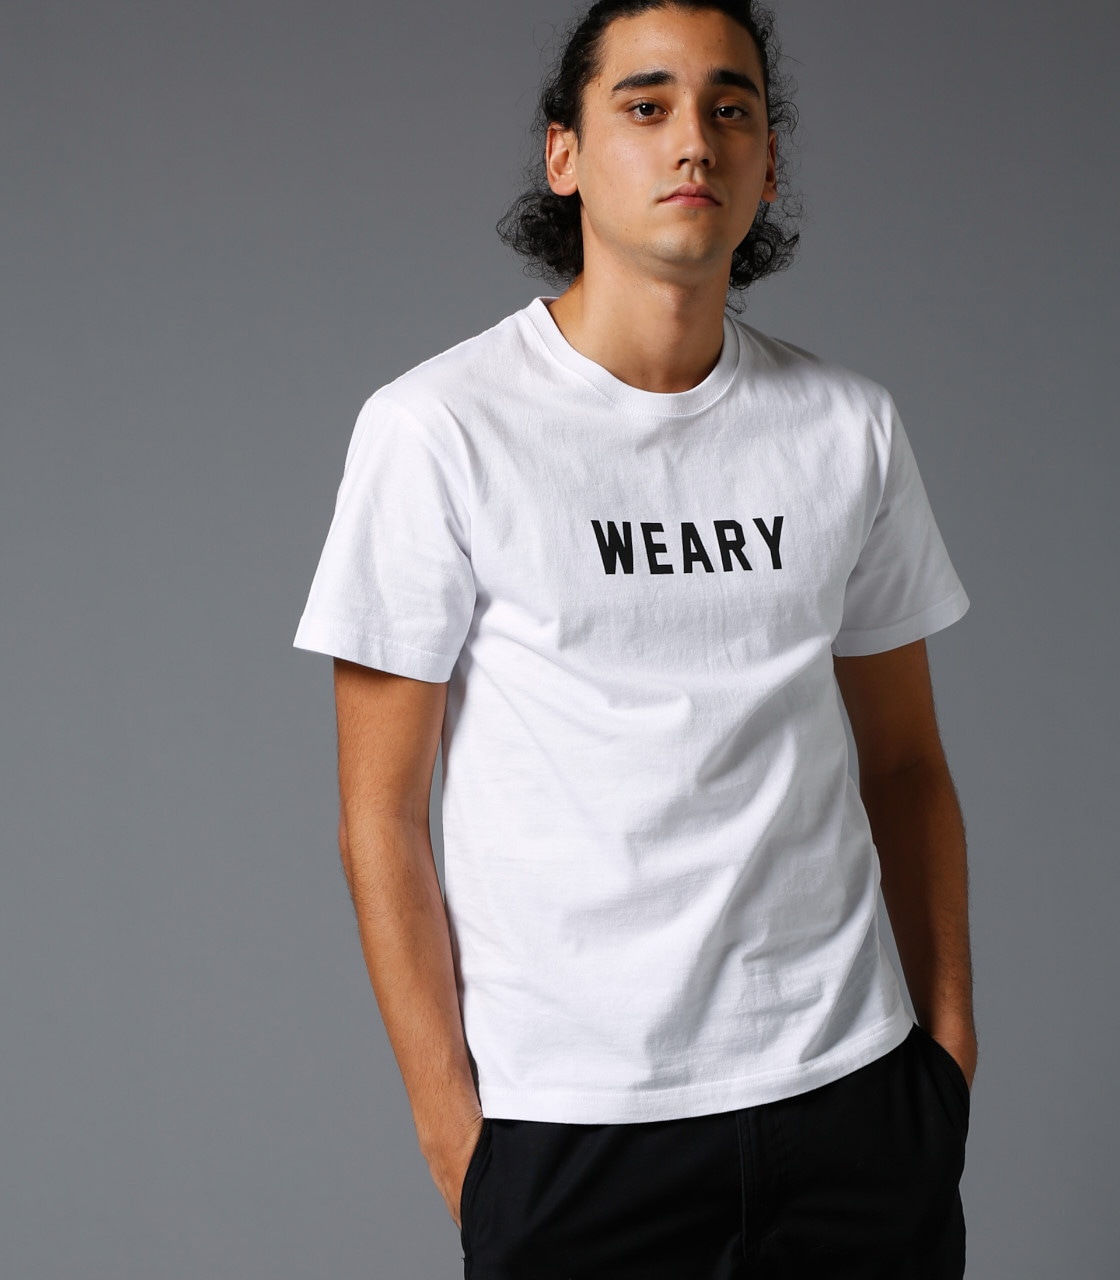 【AZUL BY MOUSSY】WEARY 半袖T 詳細画像 WHT 3